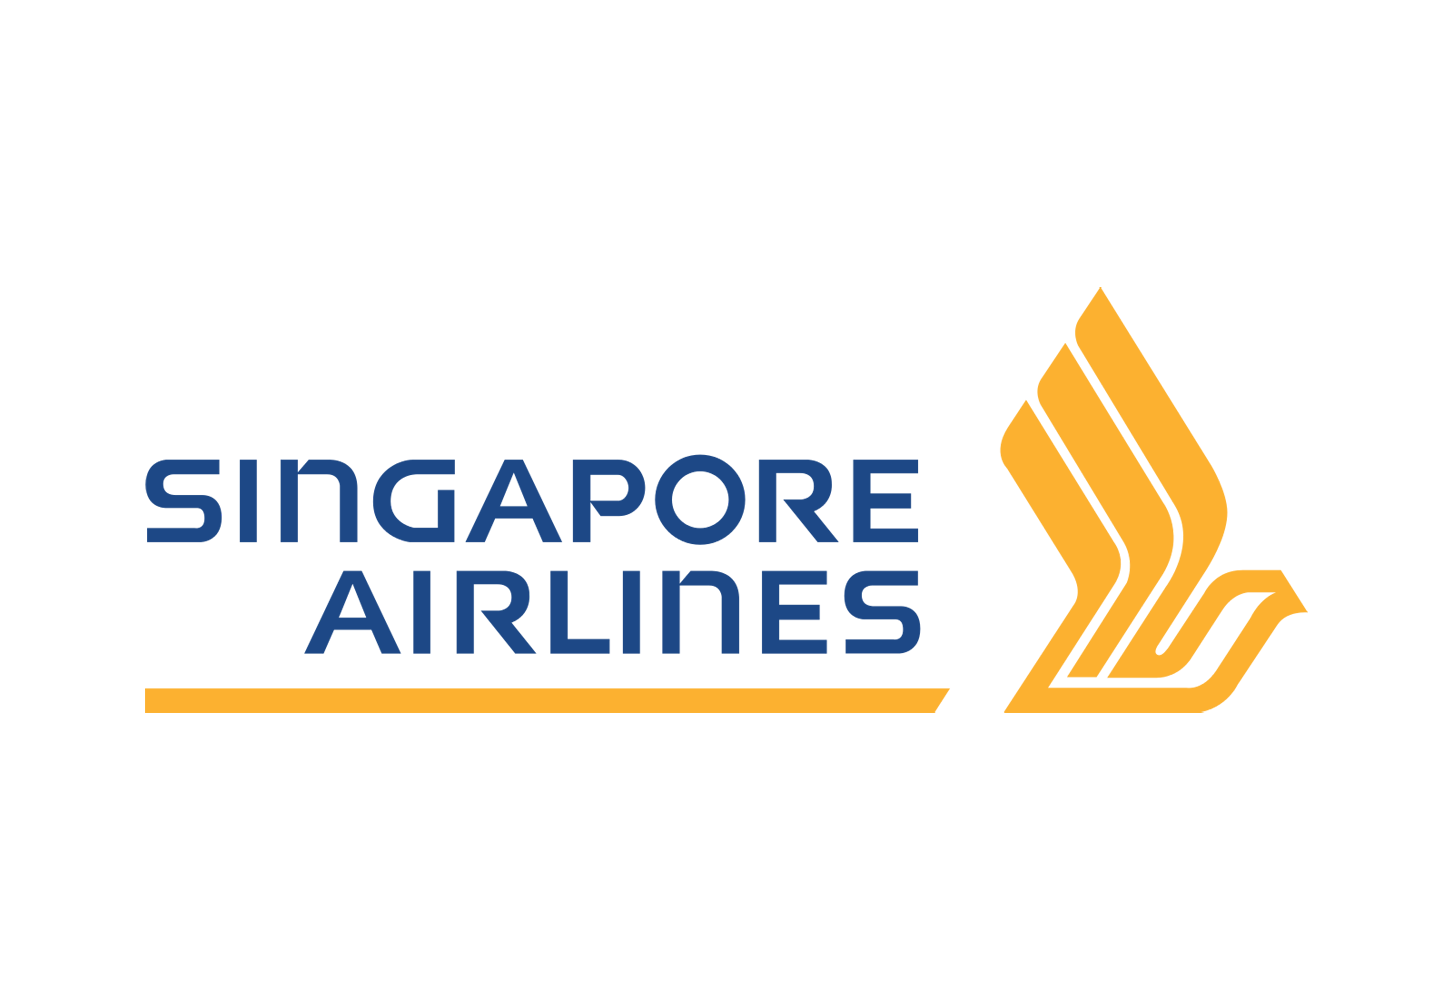 Singapore_Airlines_logo-01 - Singapore Airlines Logo PNG